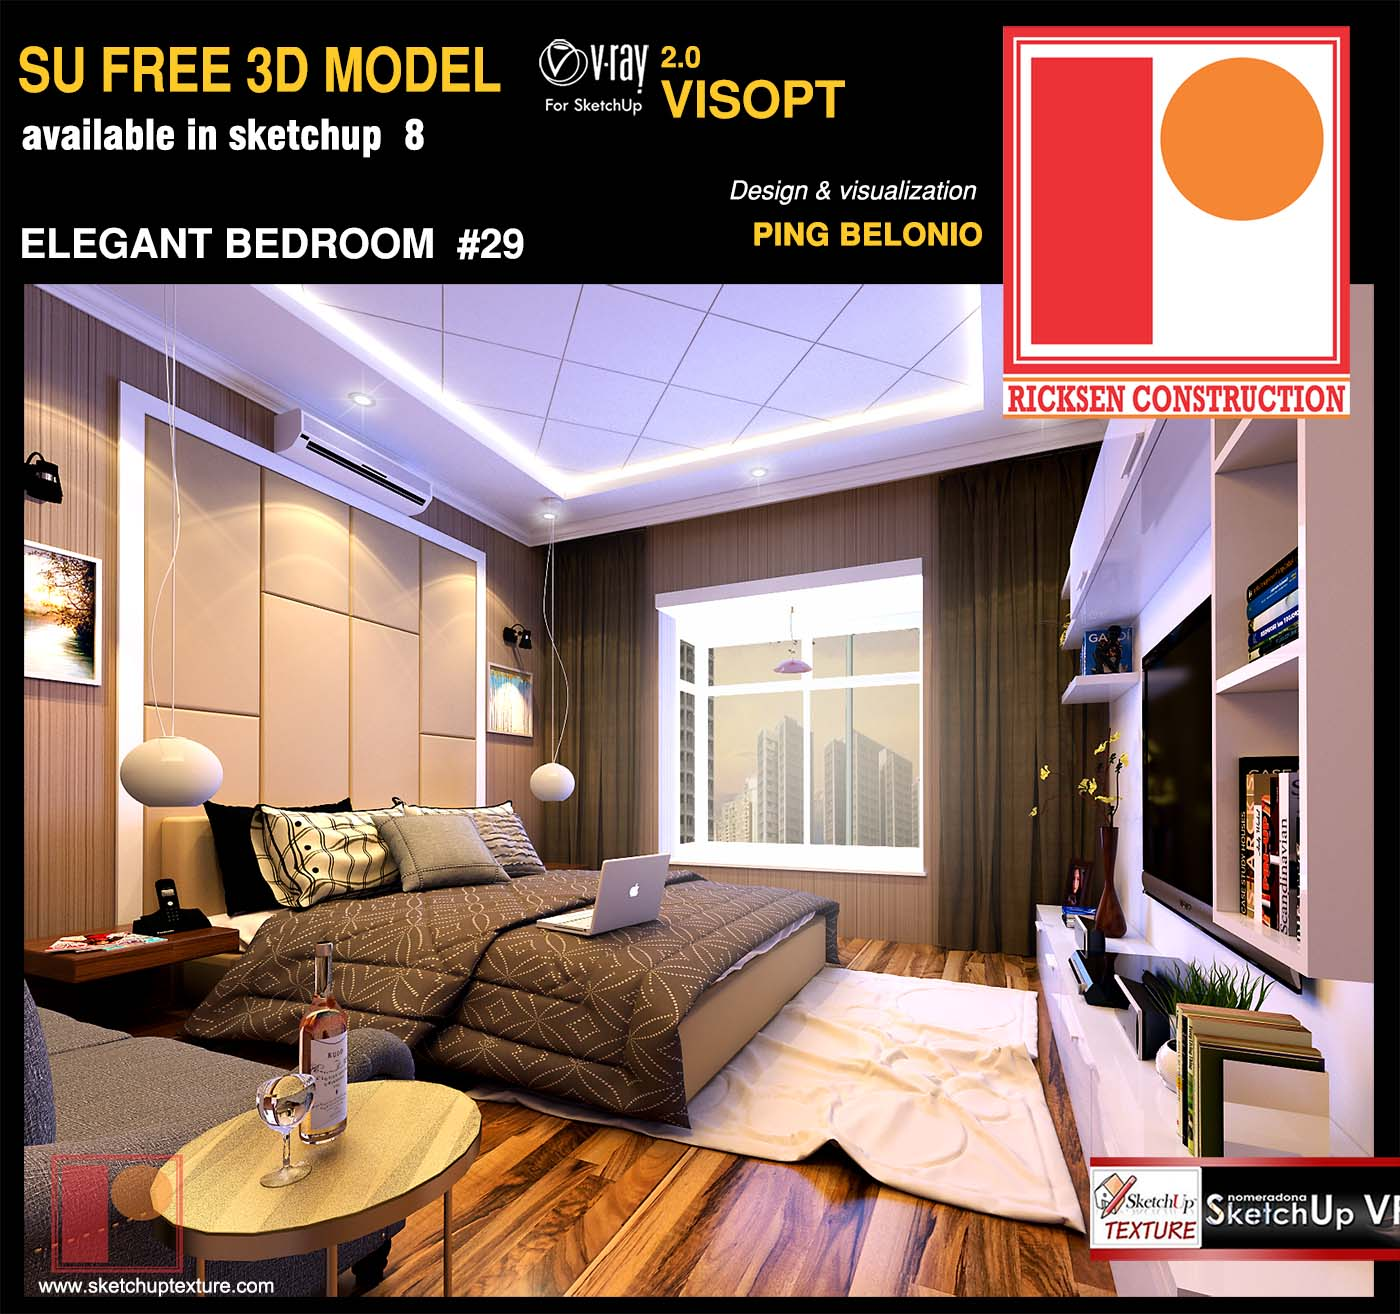 Sketchup texture free sketchup 3d model elegant bedroom for Model bedroom interior design